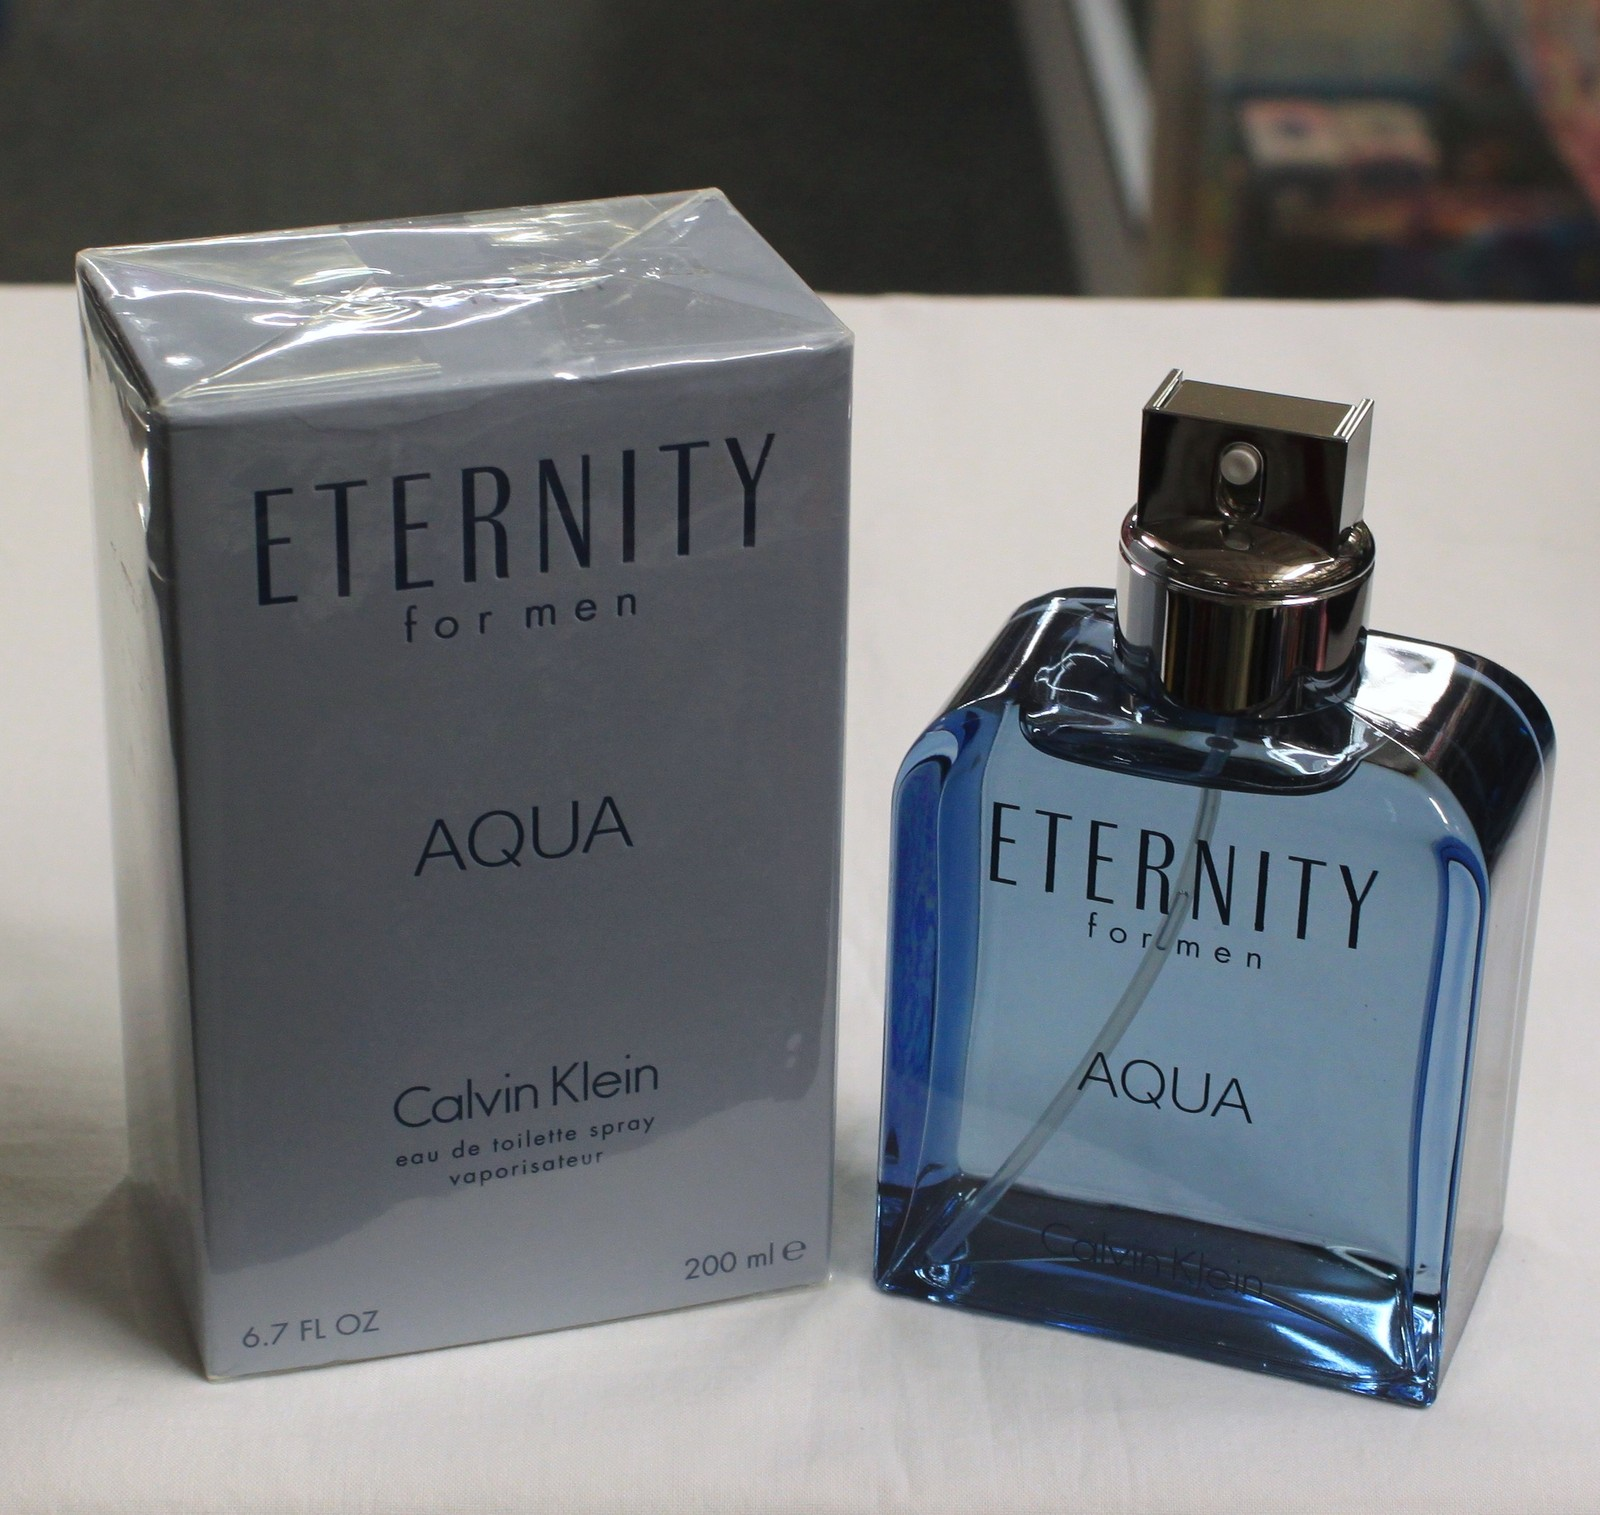 Primary image for Eternity Aqua by Calvin Klen for Men, Joint Bottle 6.7 fl.oz / 200 ml EDT Spray